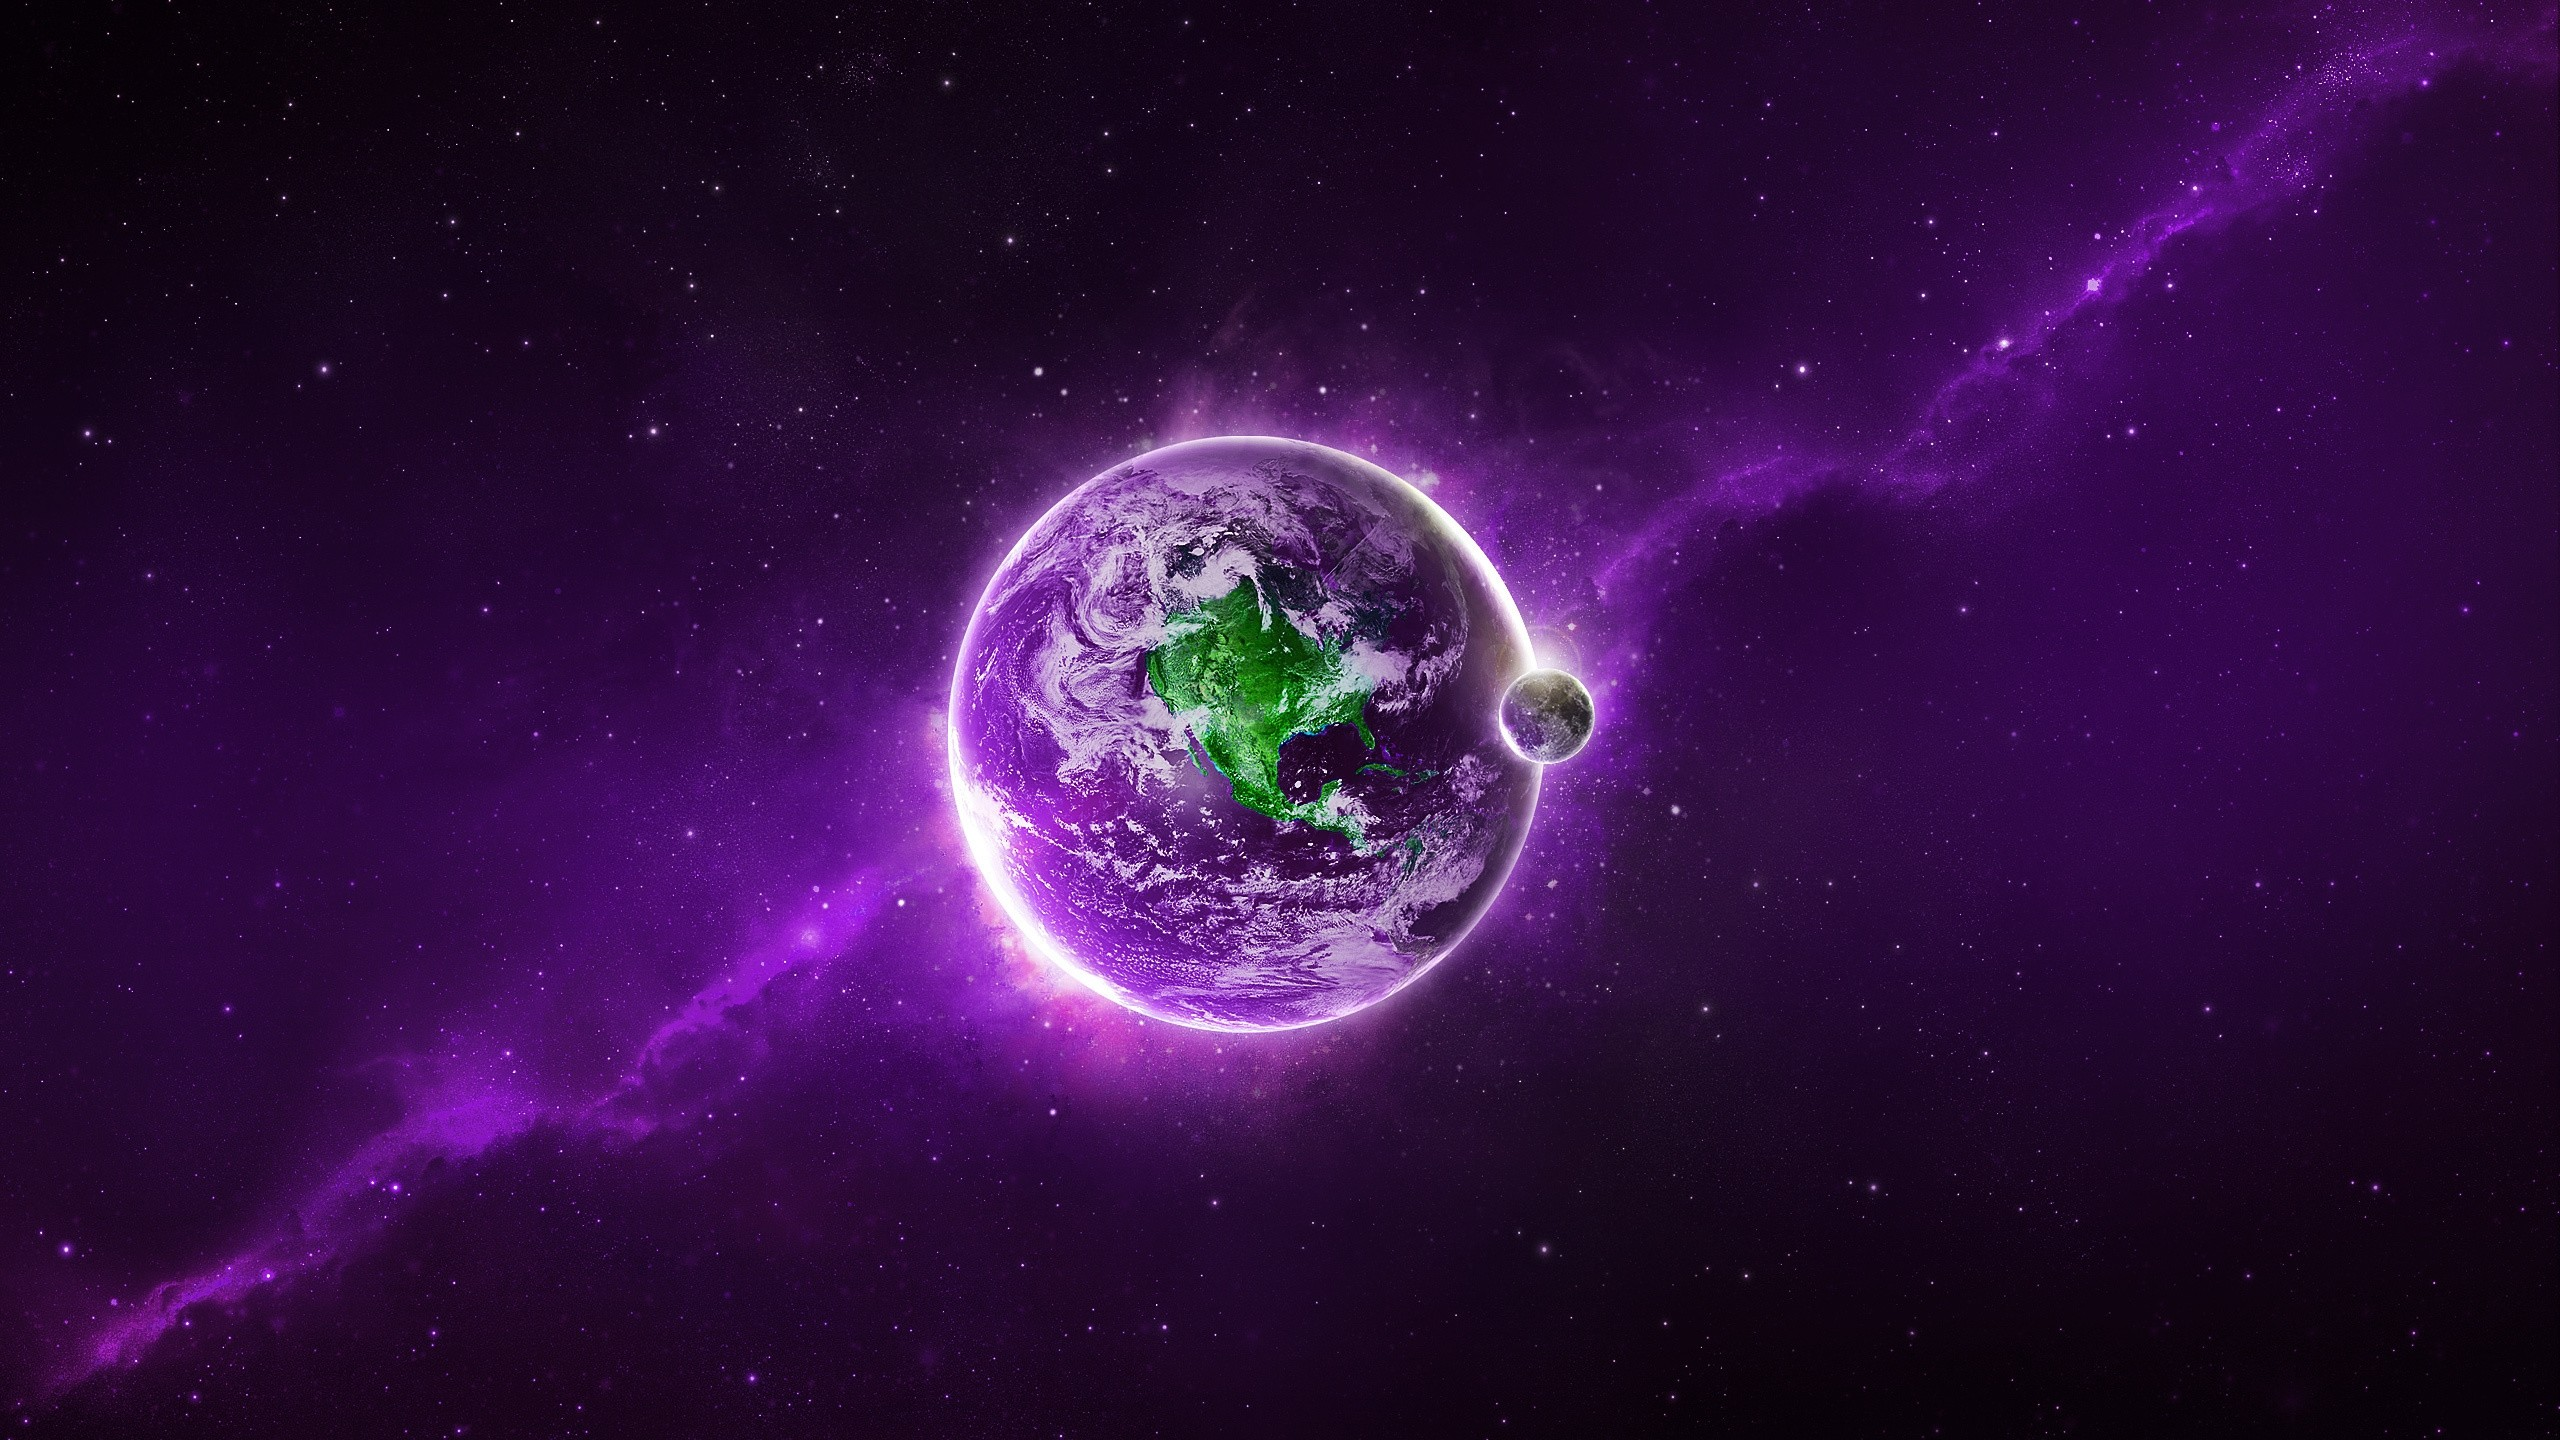 Purple Space Planet. How to set wallpaper on your desktop? Click  the download link from above and set the wallpaper on the desktop from your  OS.